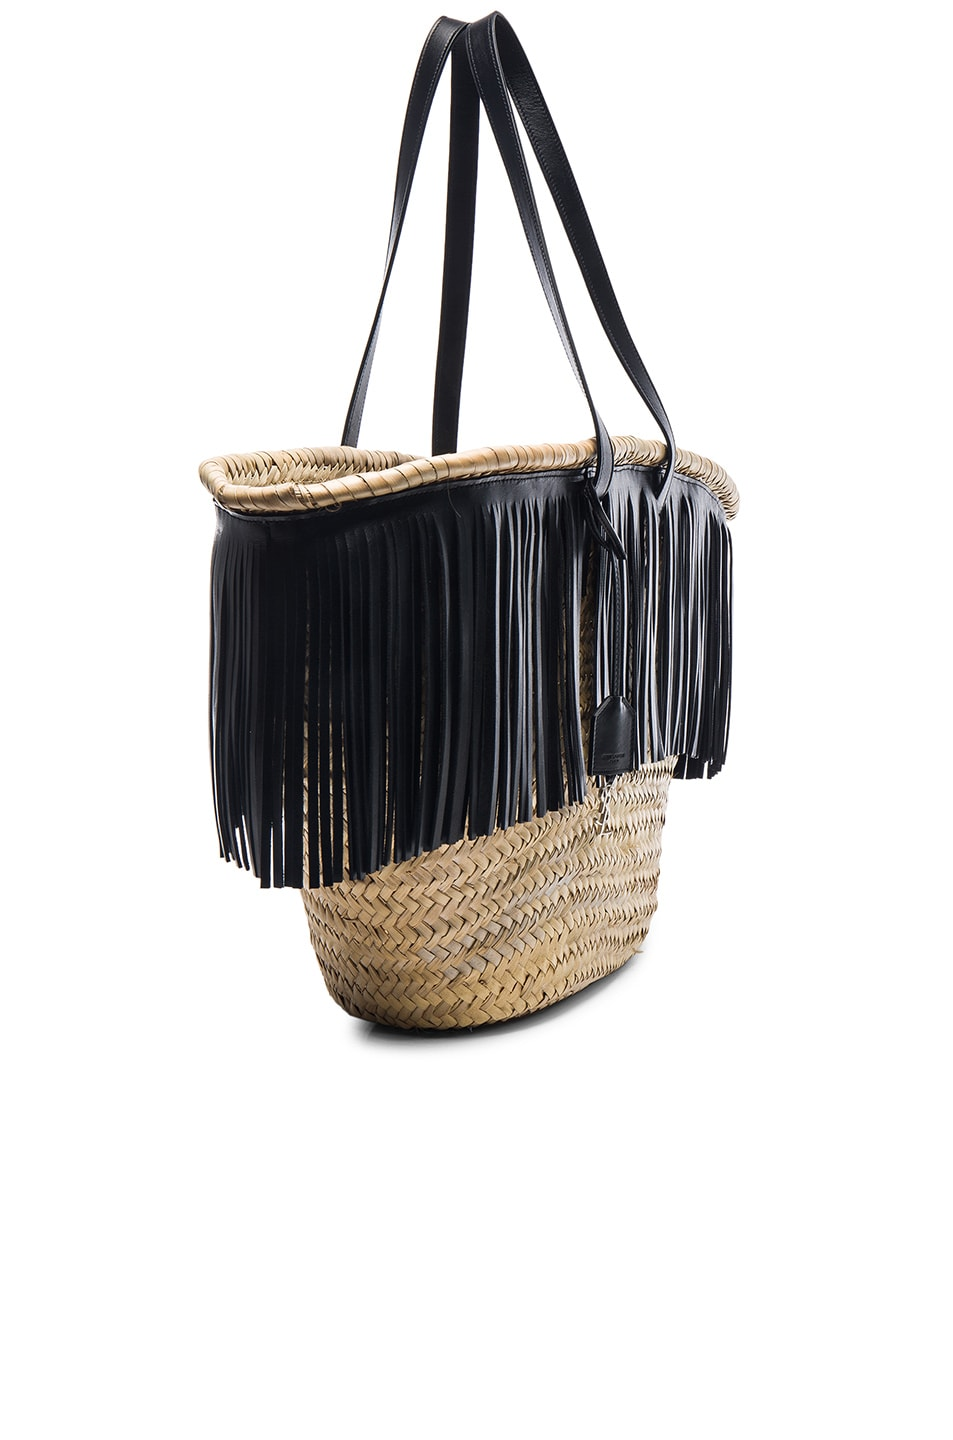 Saint laurent panier large basket bag in natural black fwrd - Diametre panier basket ...